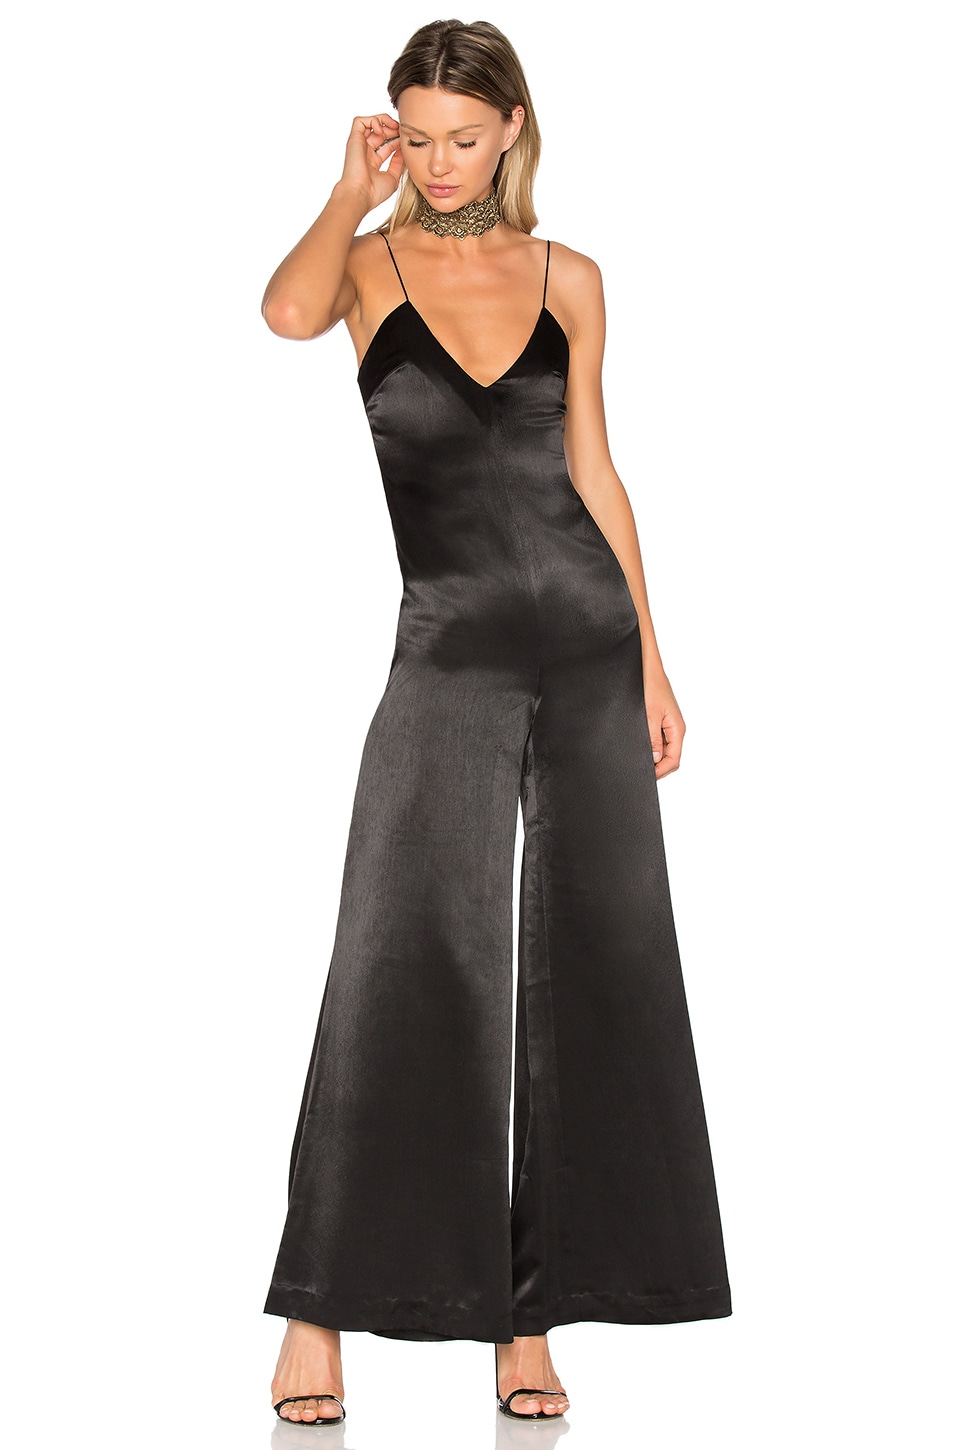 VATANIKA Jumpsuit in Black